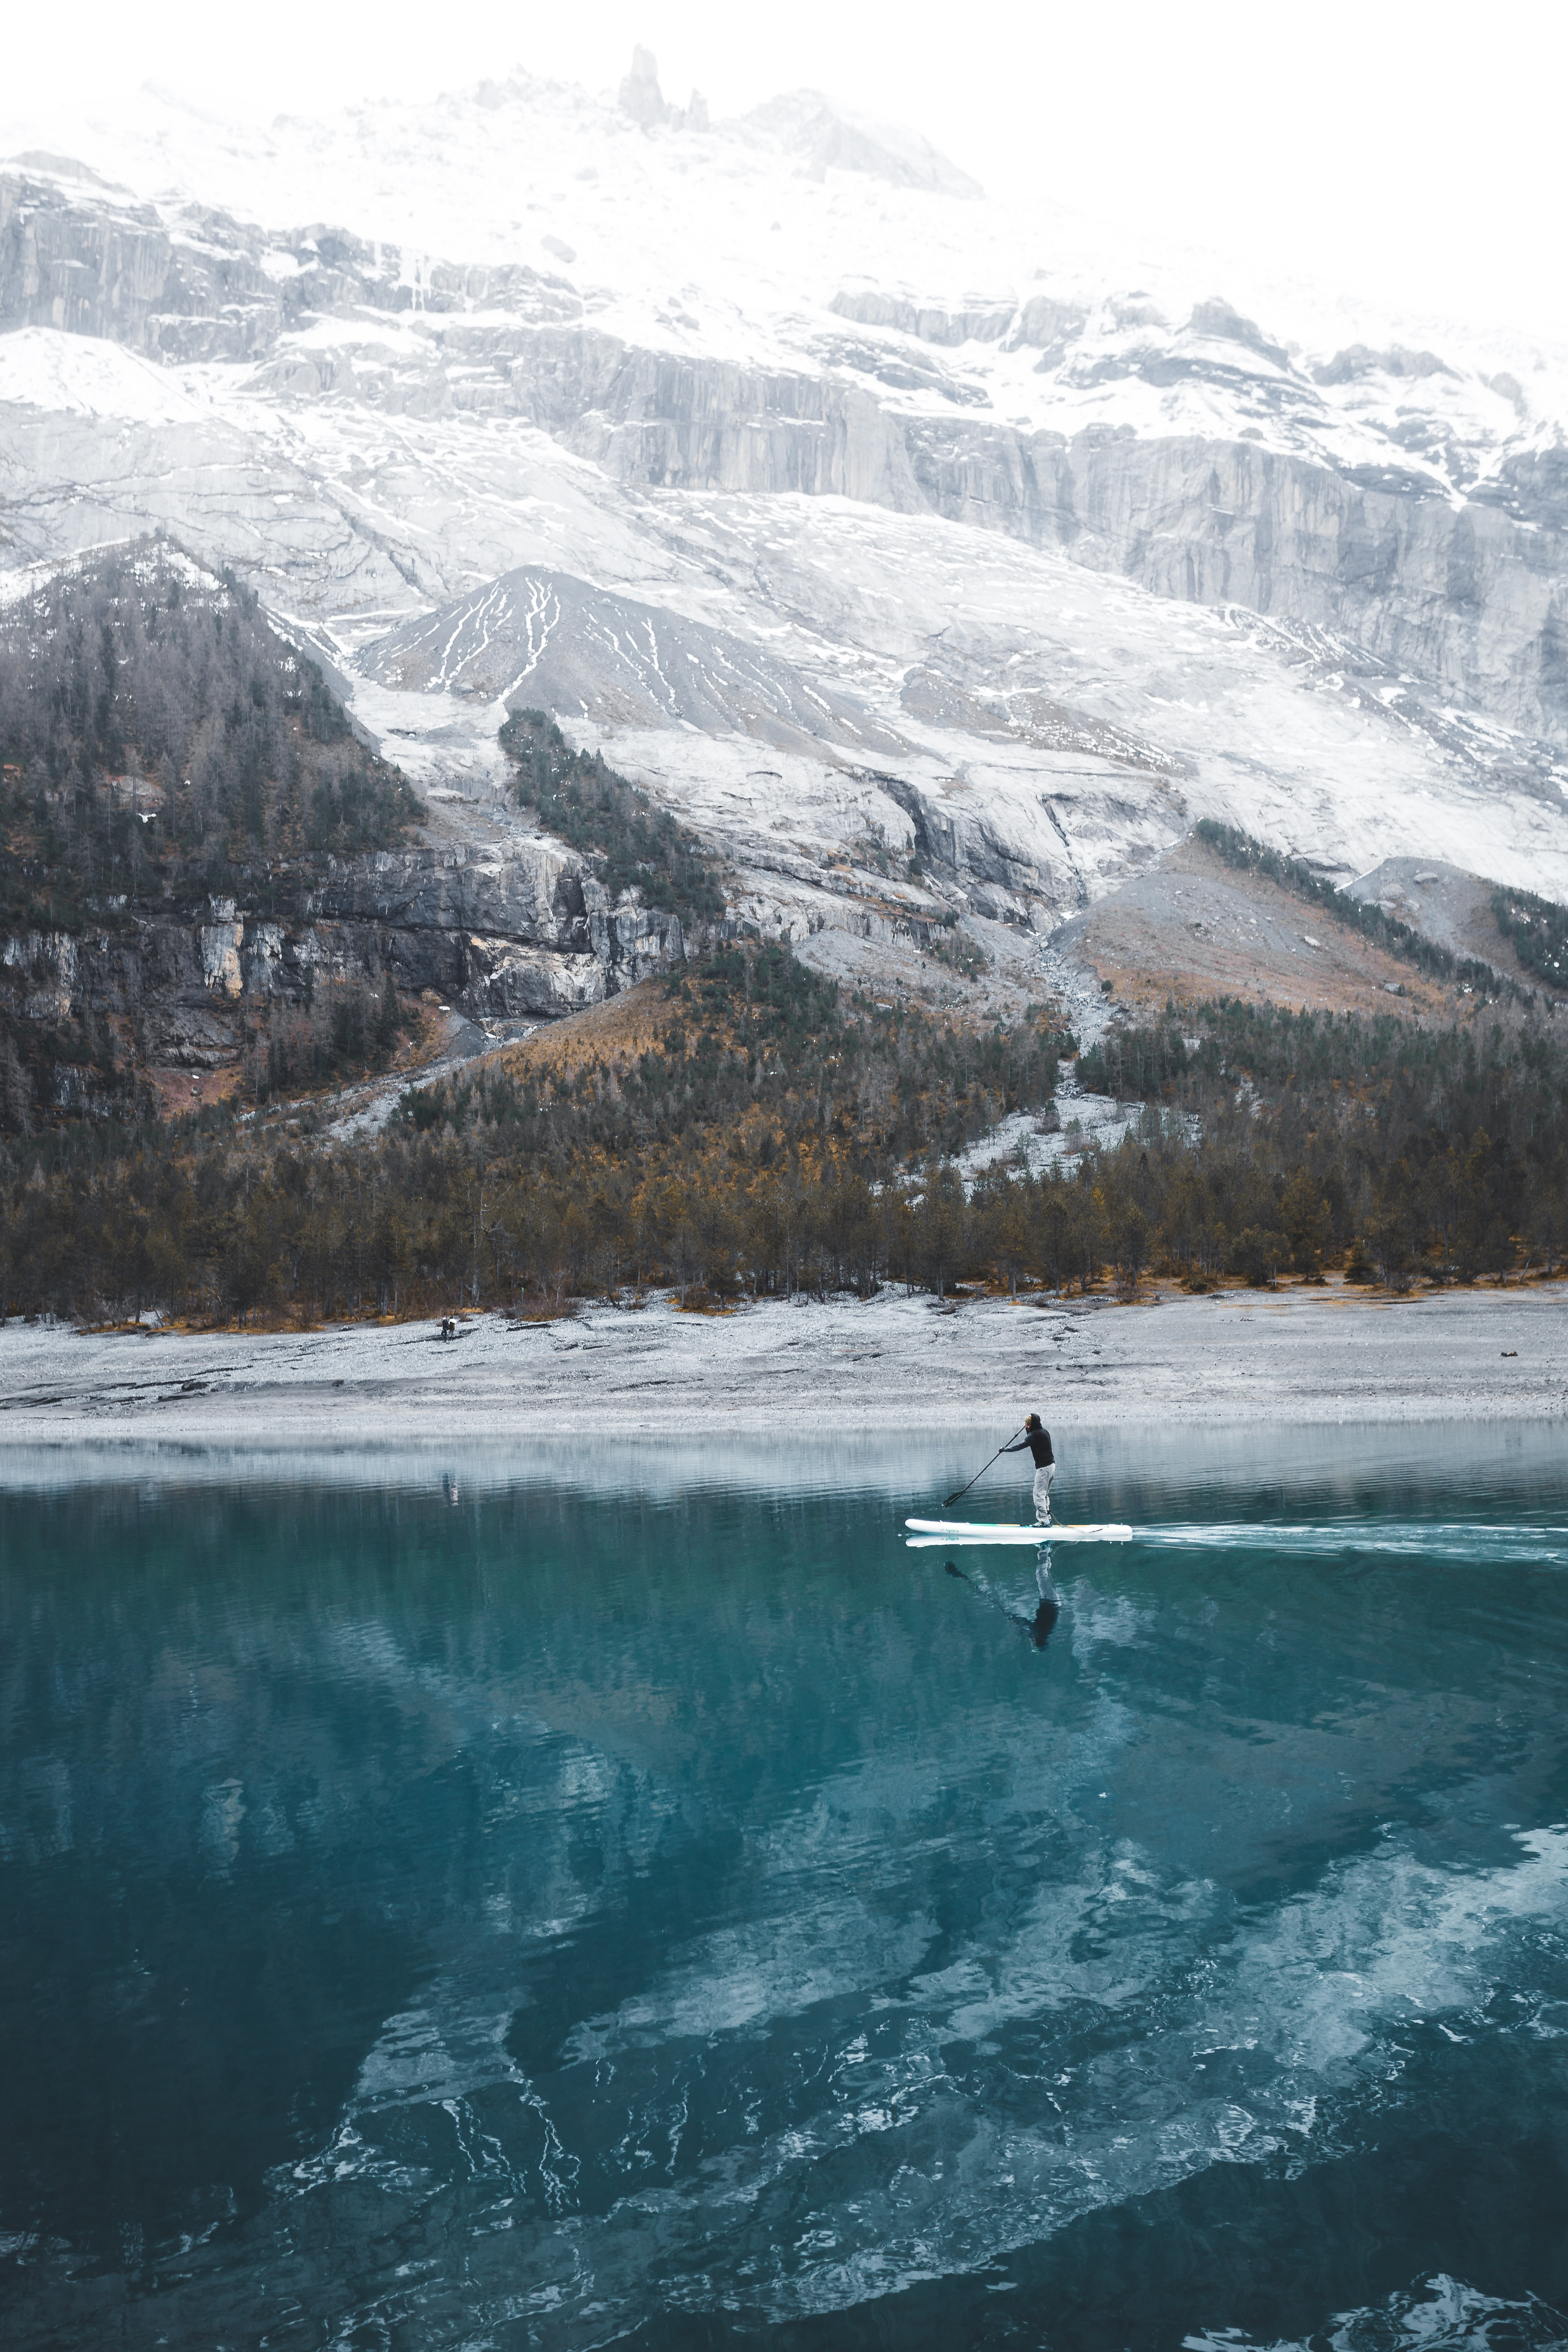 A man on a paddle board on an azure lake in the mountains